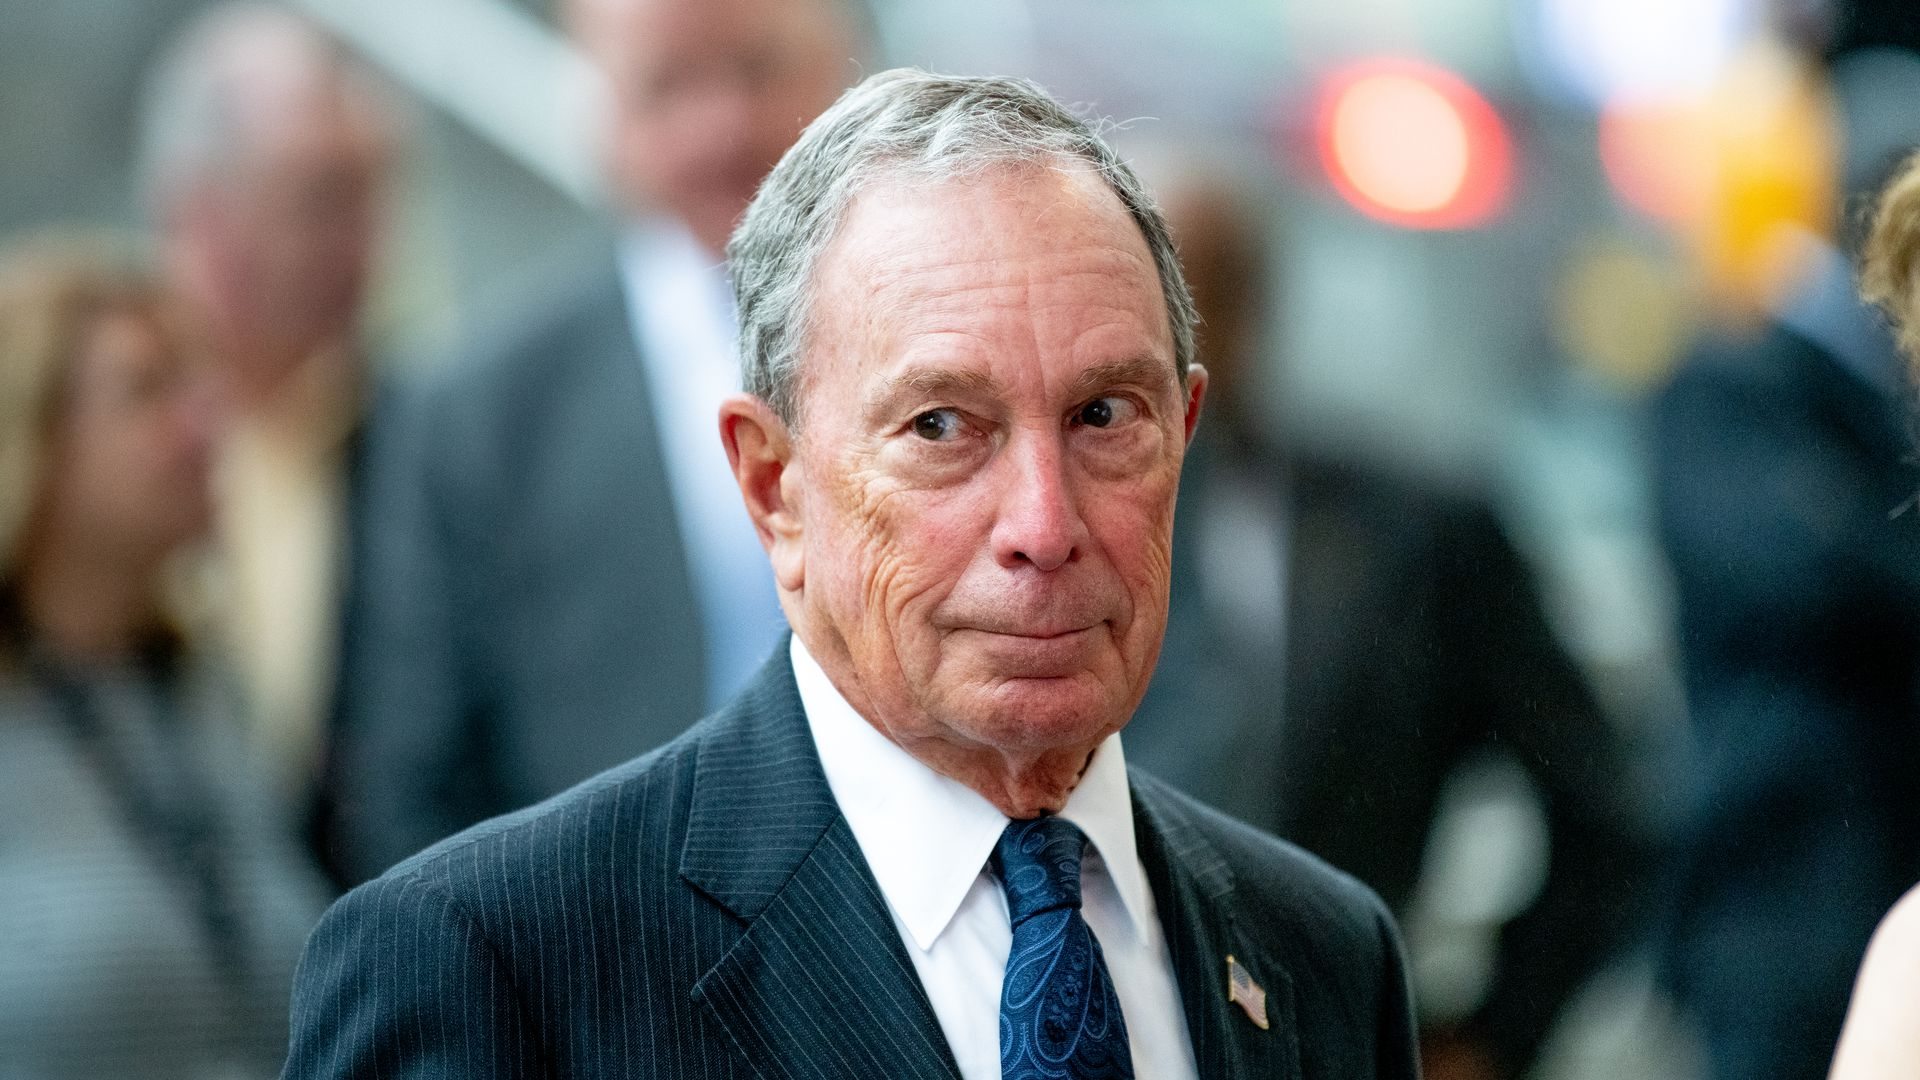 Former New York City mayor and billionaire Michael Bloomberg